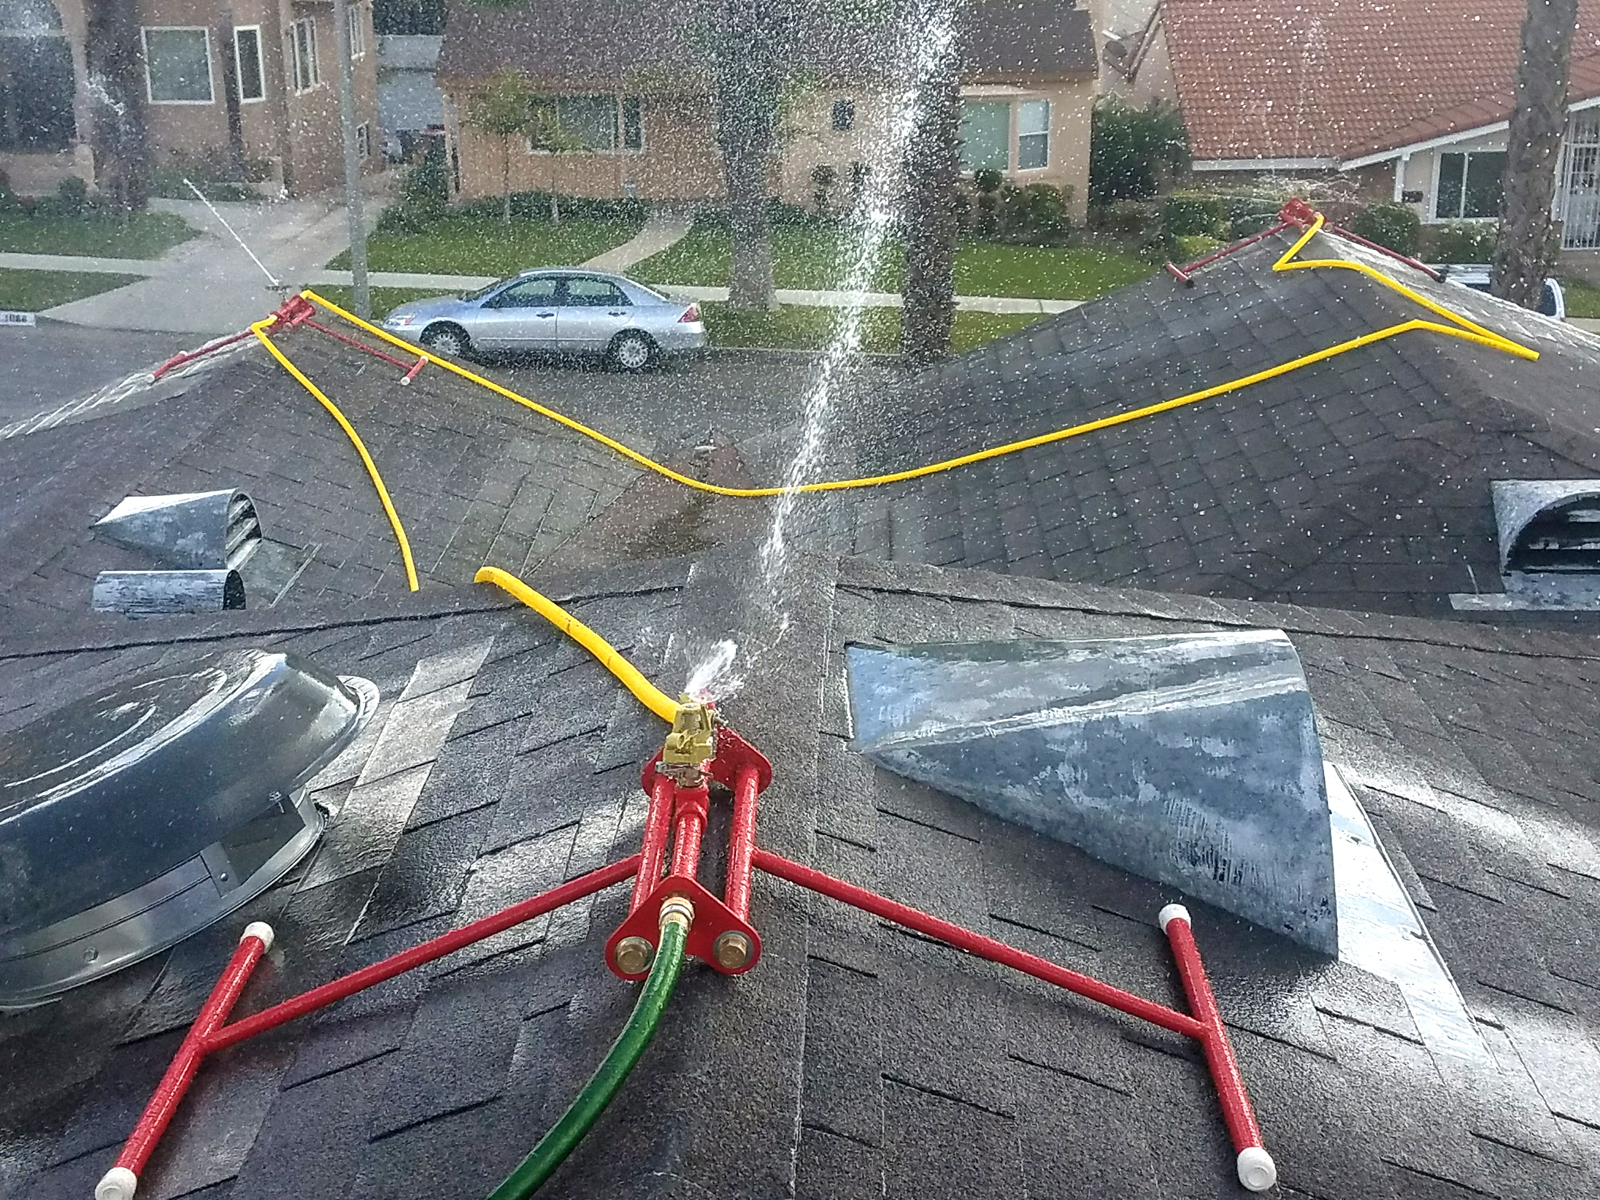 Ember S Guard Rooftop Sprinkler System Guard Your Home